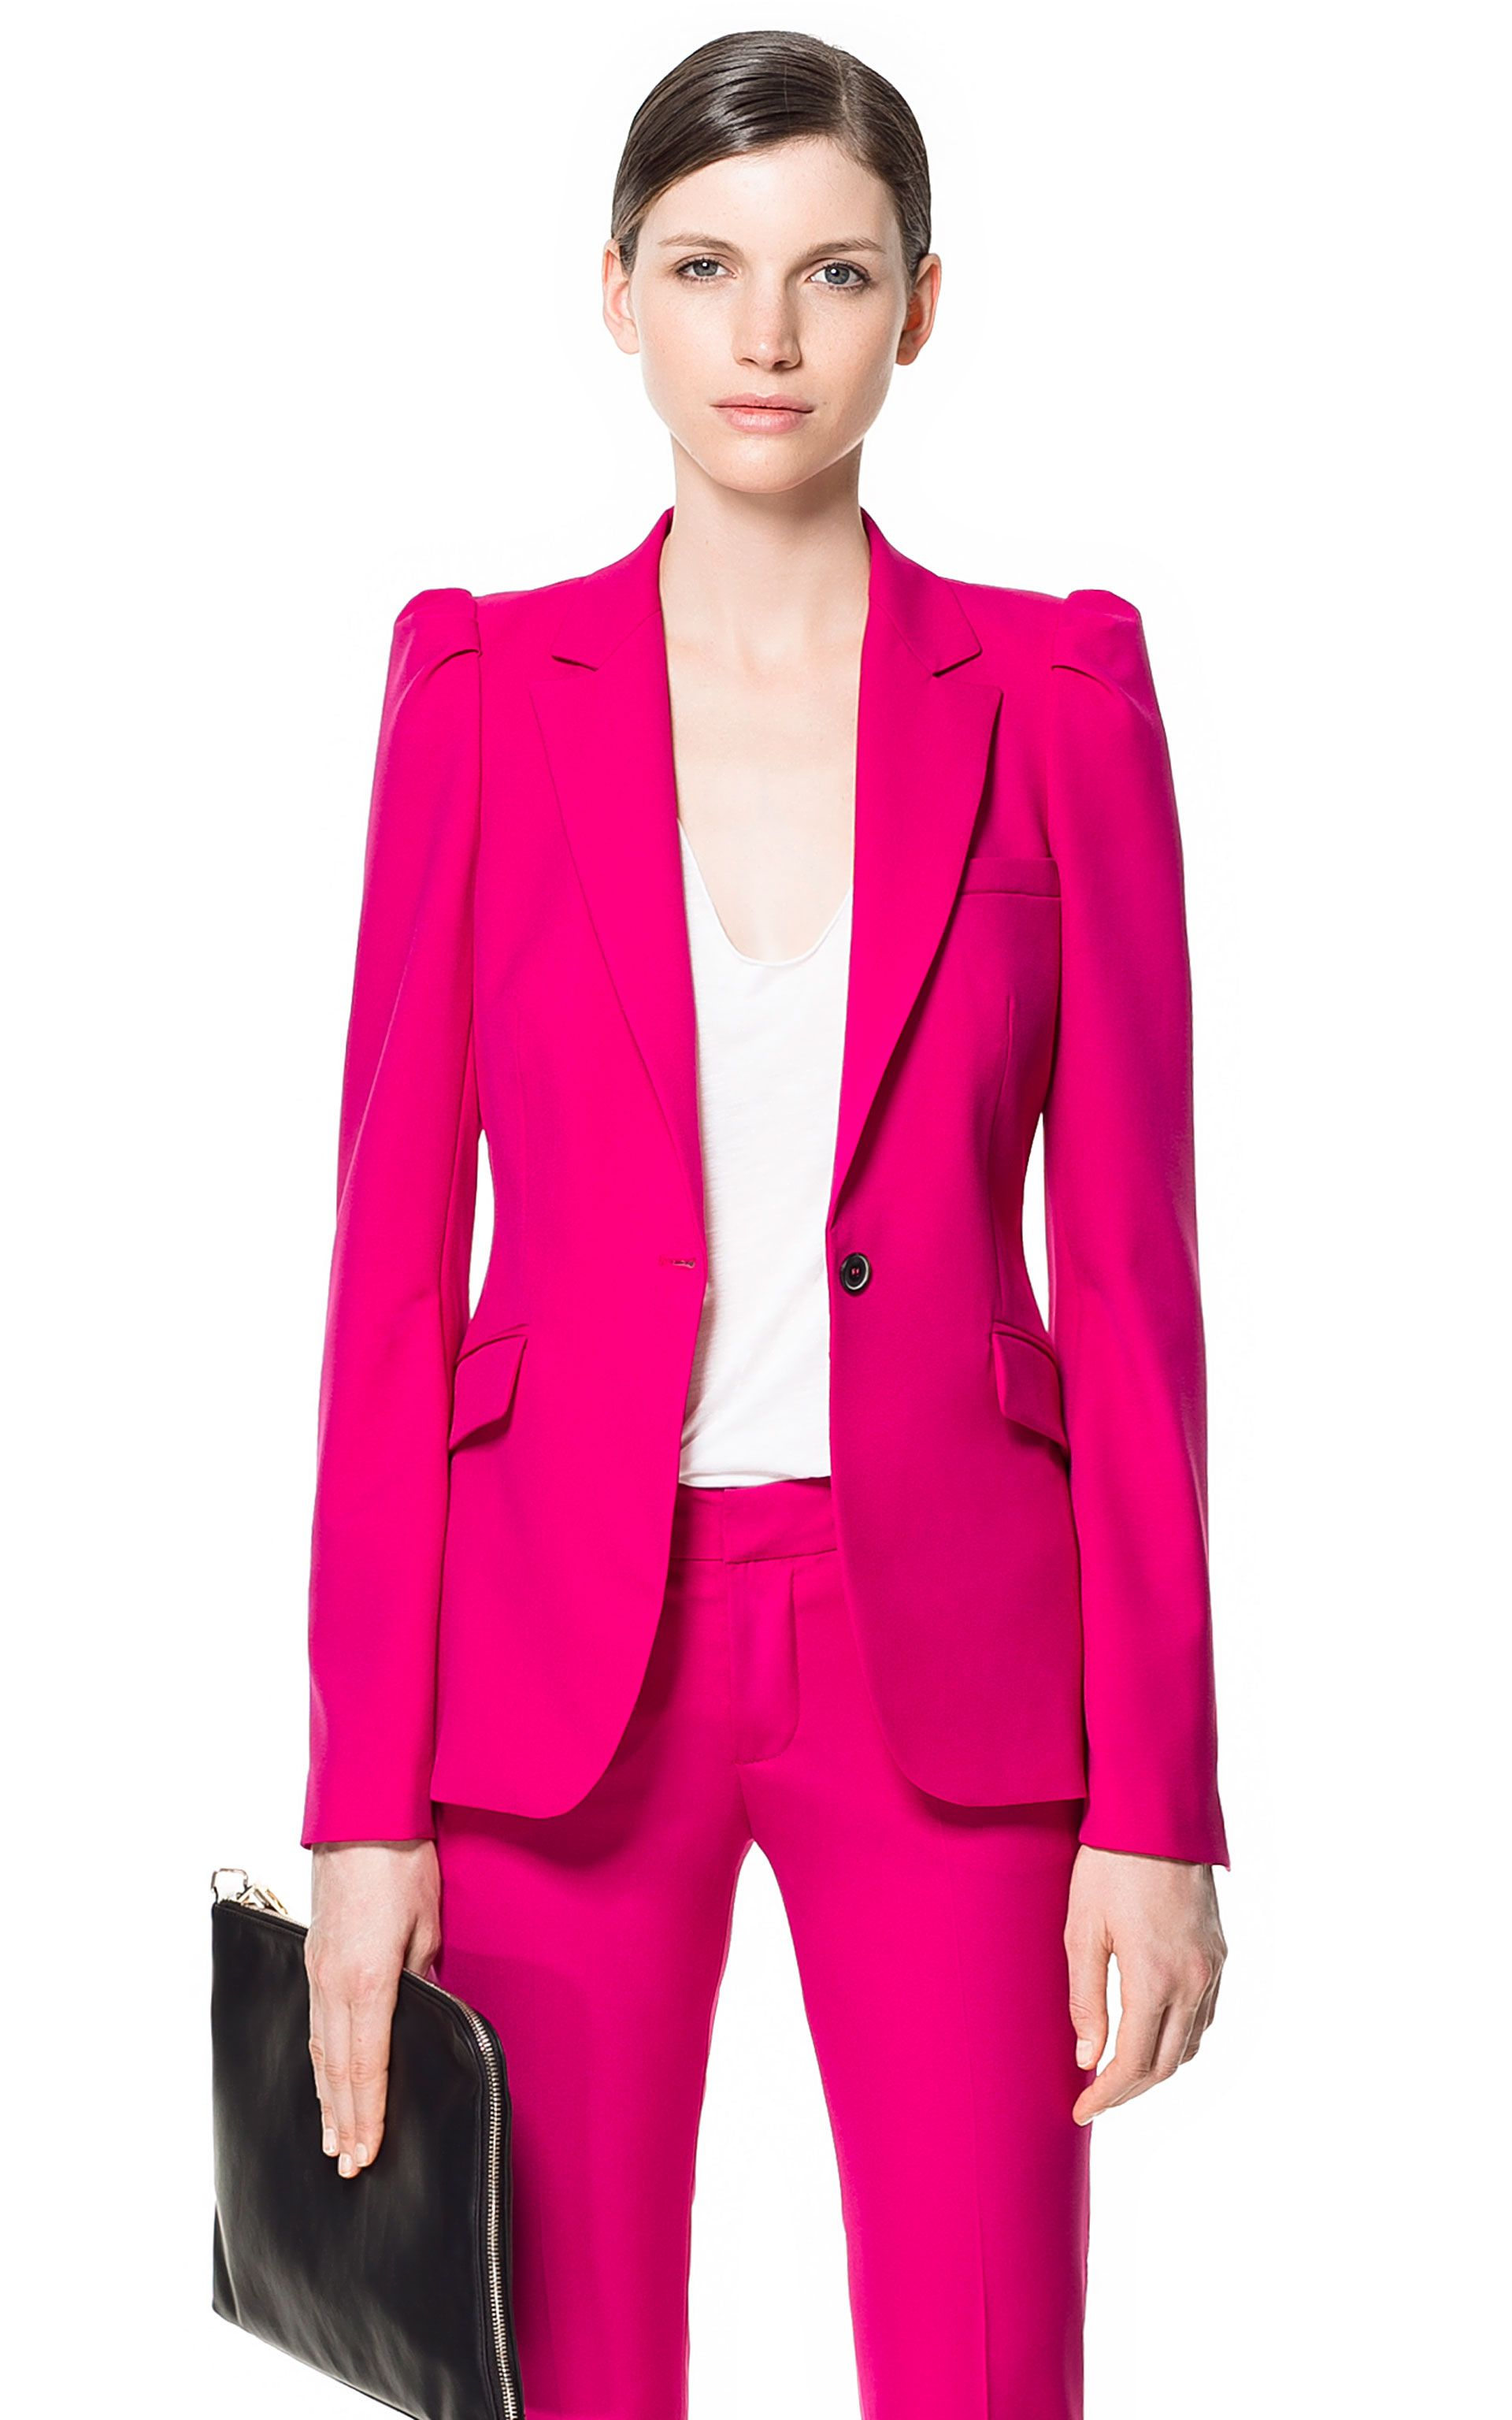 BLAZER WITH PUFFED SHOULDERS - Blazers - Woman - ZARA United ...